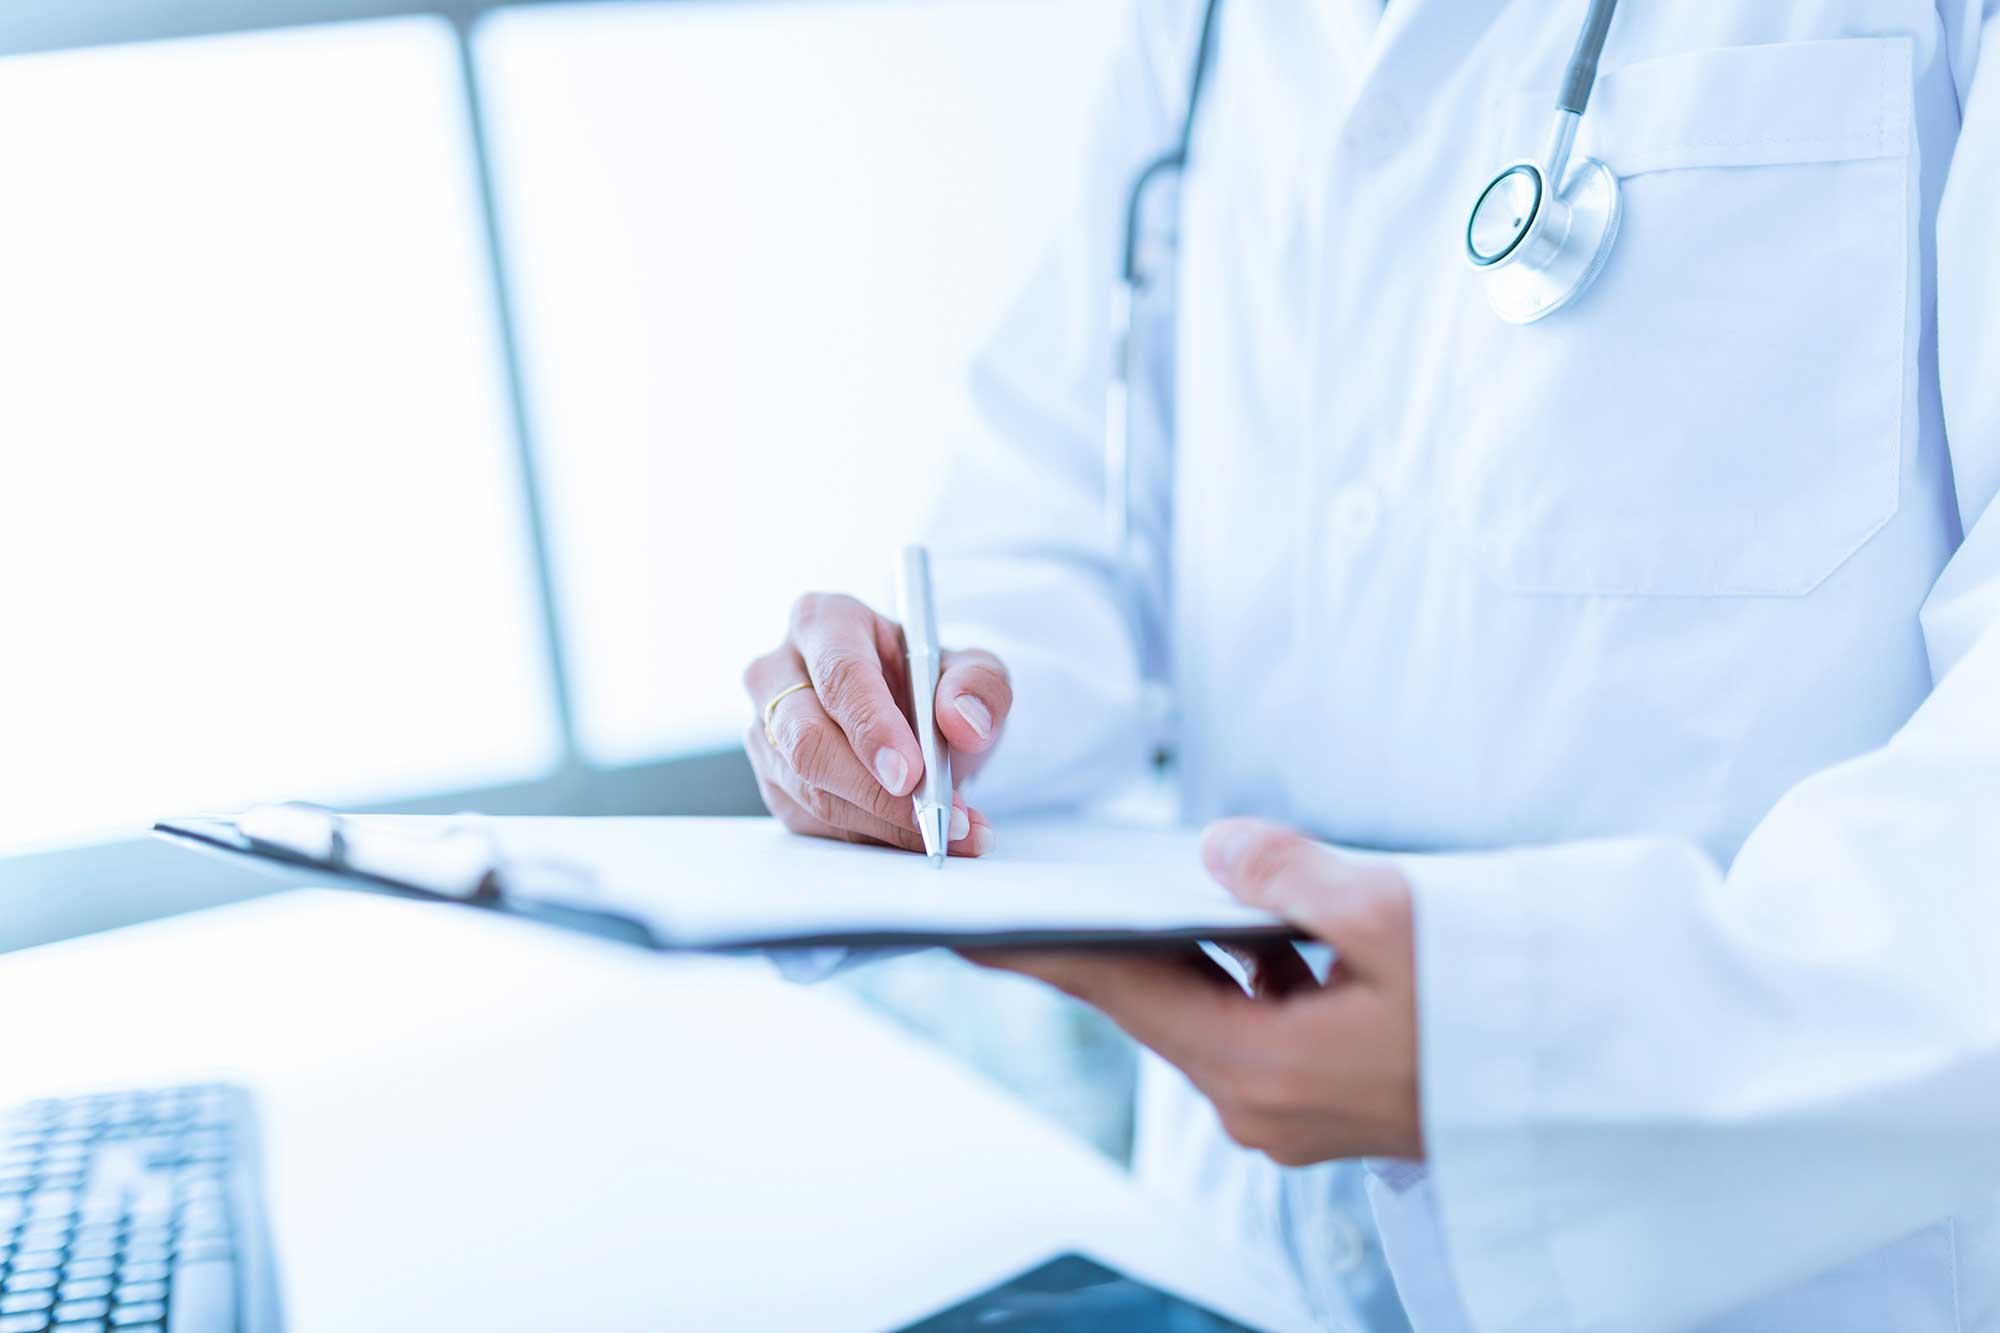 Over 200 Dubai doctors granted 10-year UAE visas by Sheikh Mohammed